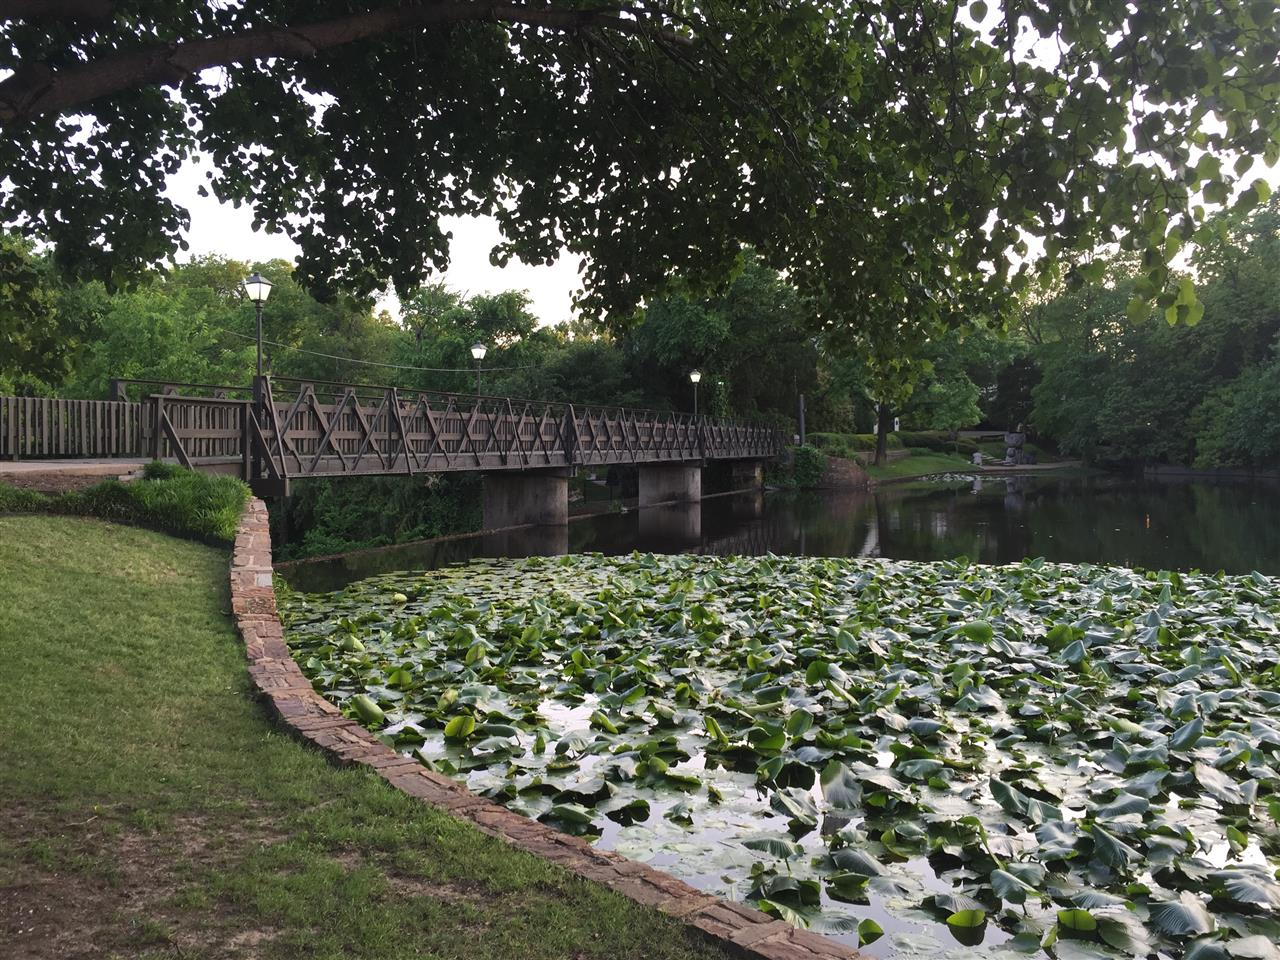 #Highland Park, #Turtle Creek, #Lakeside Park, waterlilies and bridge to Teddy Bear sculptures, #Dallas, #Texas